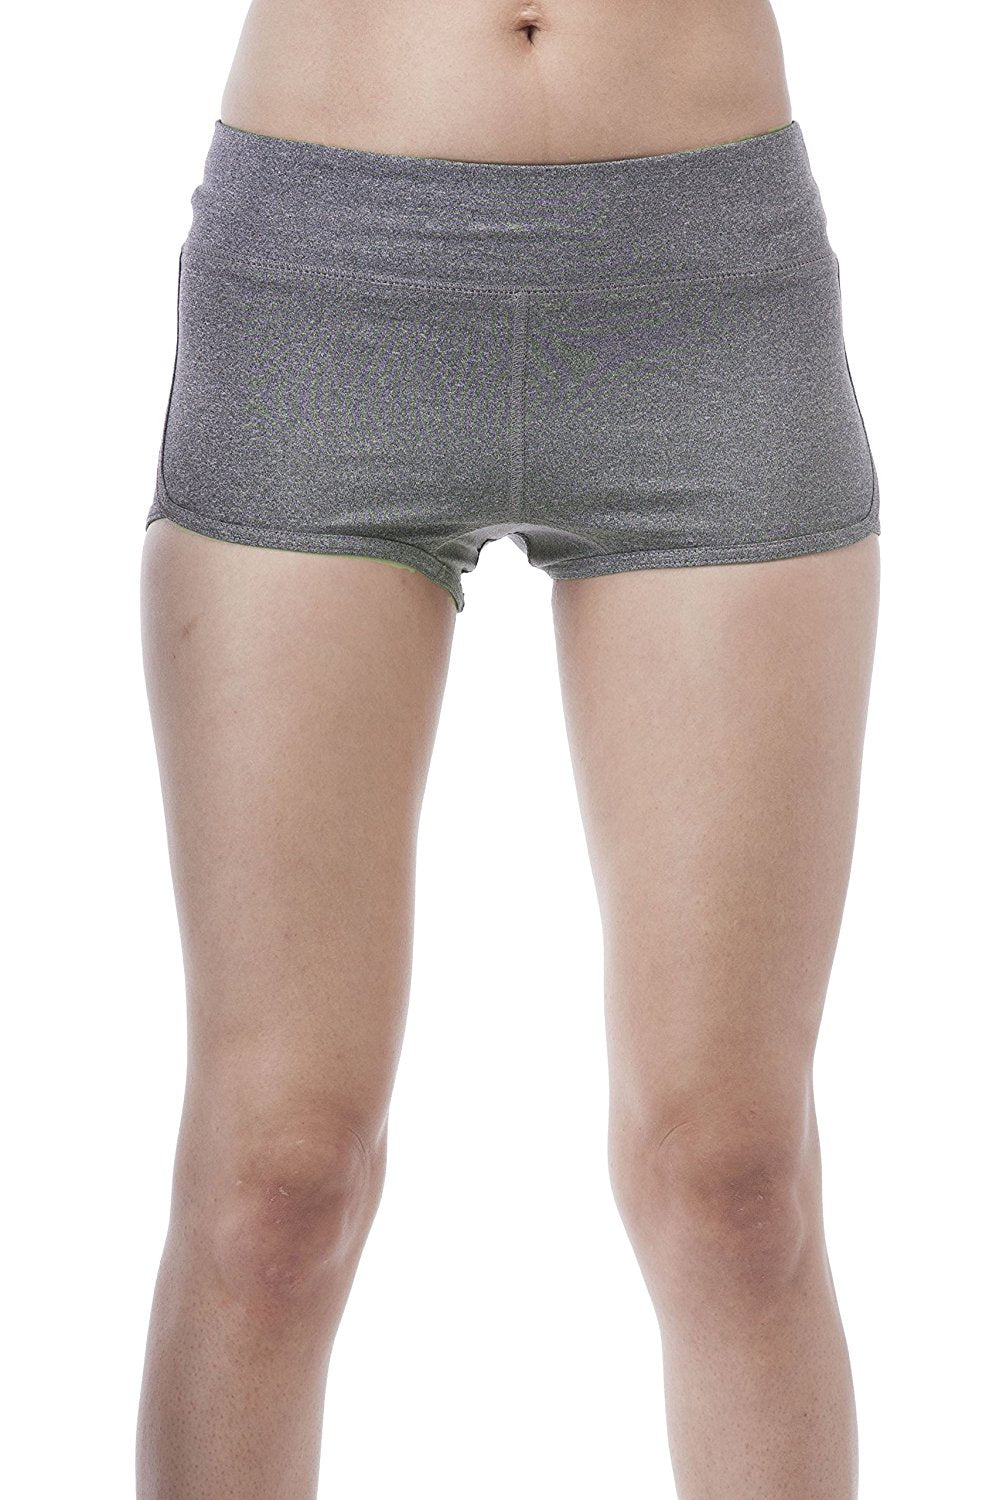 Hollywood Star Fashion Women's Athletic Sport Stretchy Yoga Active Shorts